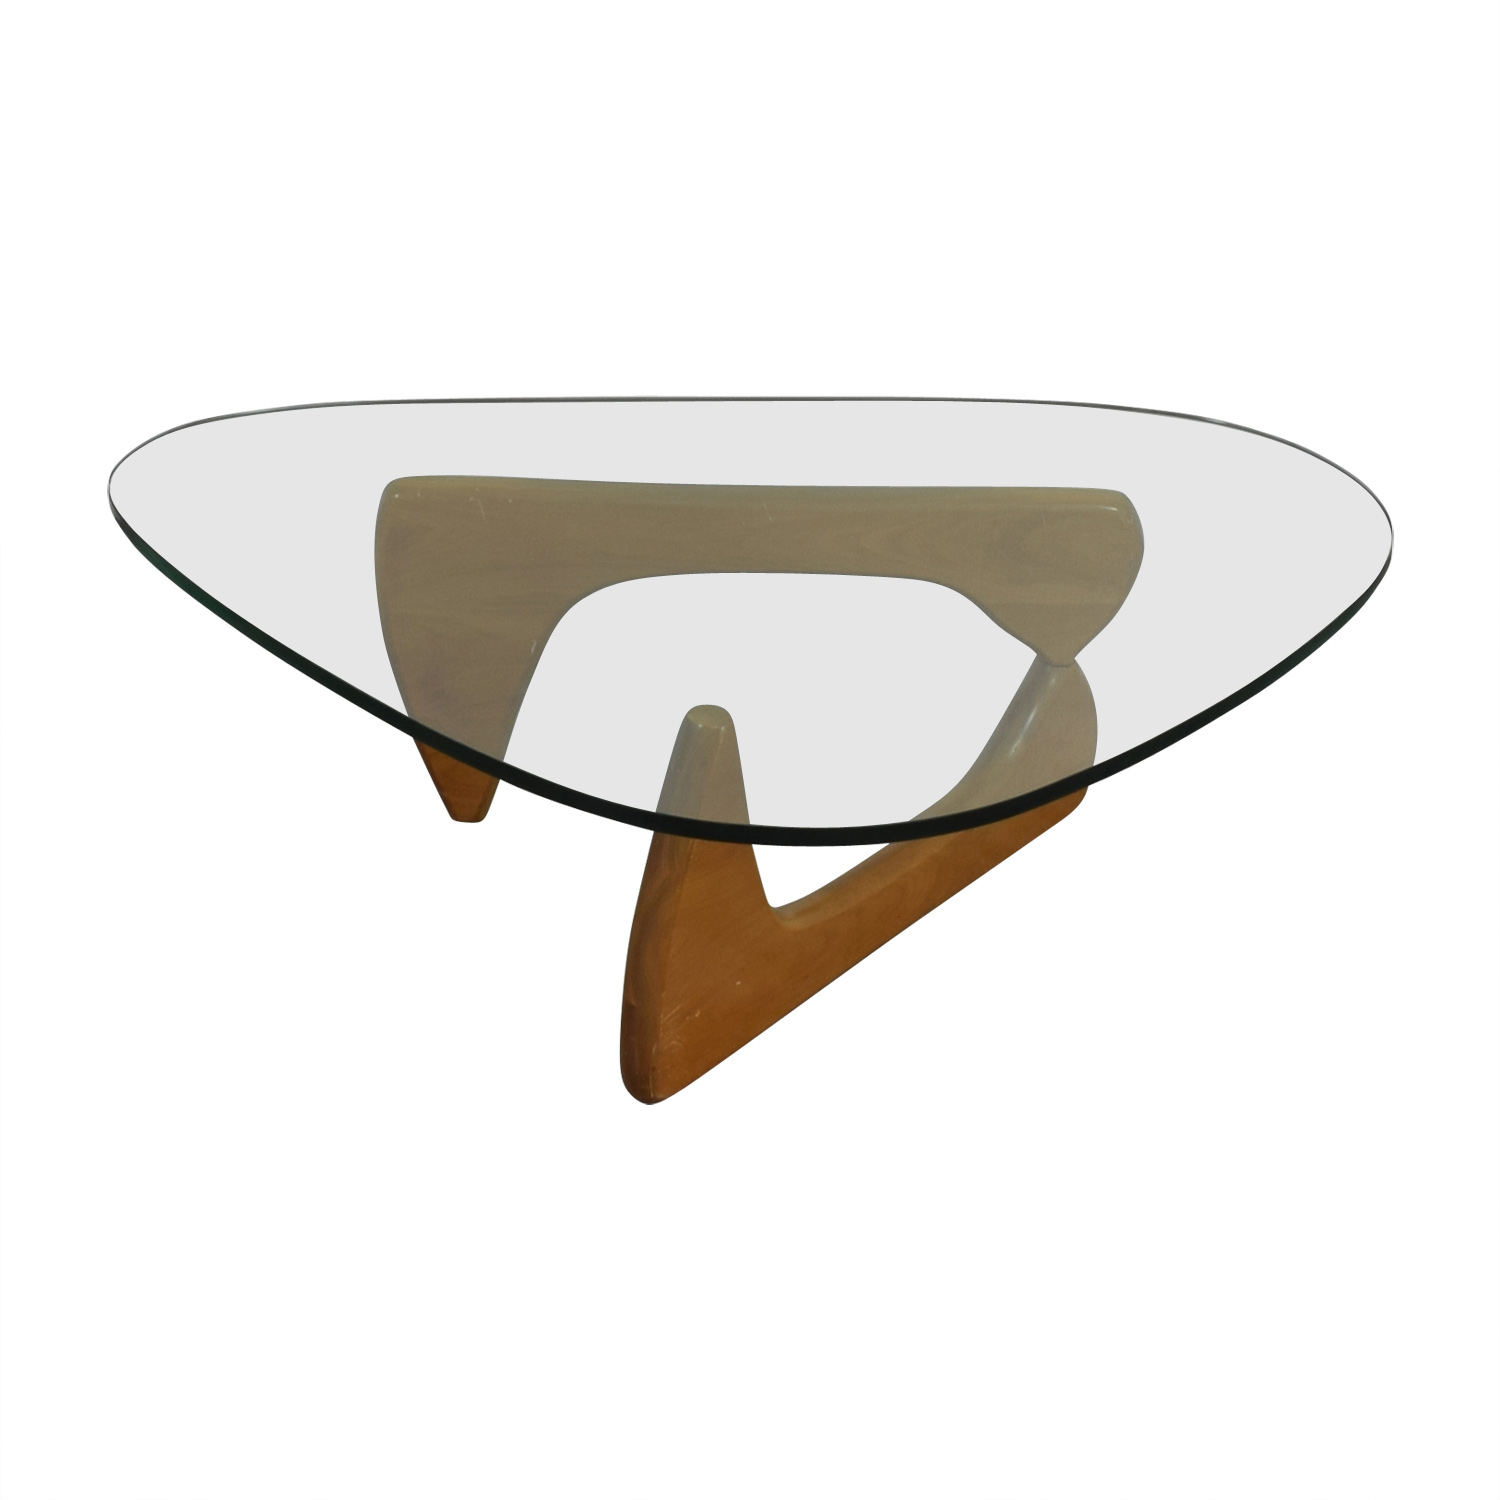 Herman Miller Herman Miller Noguchi Glass and Wood Table on sale